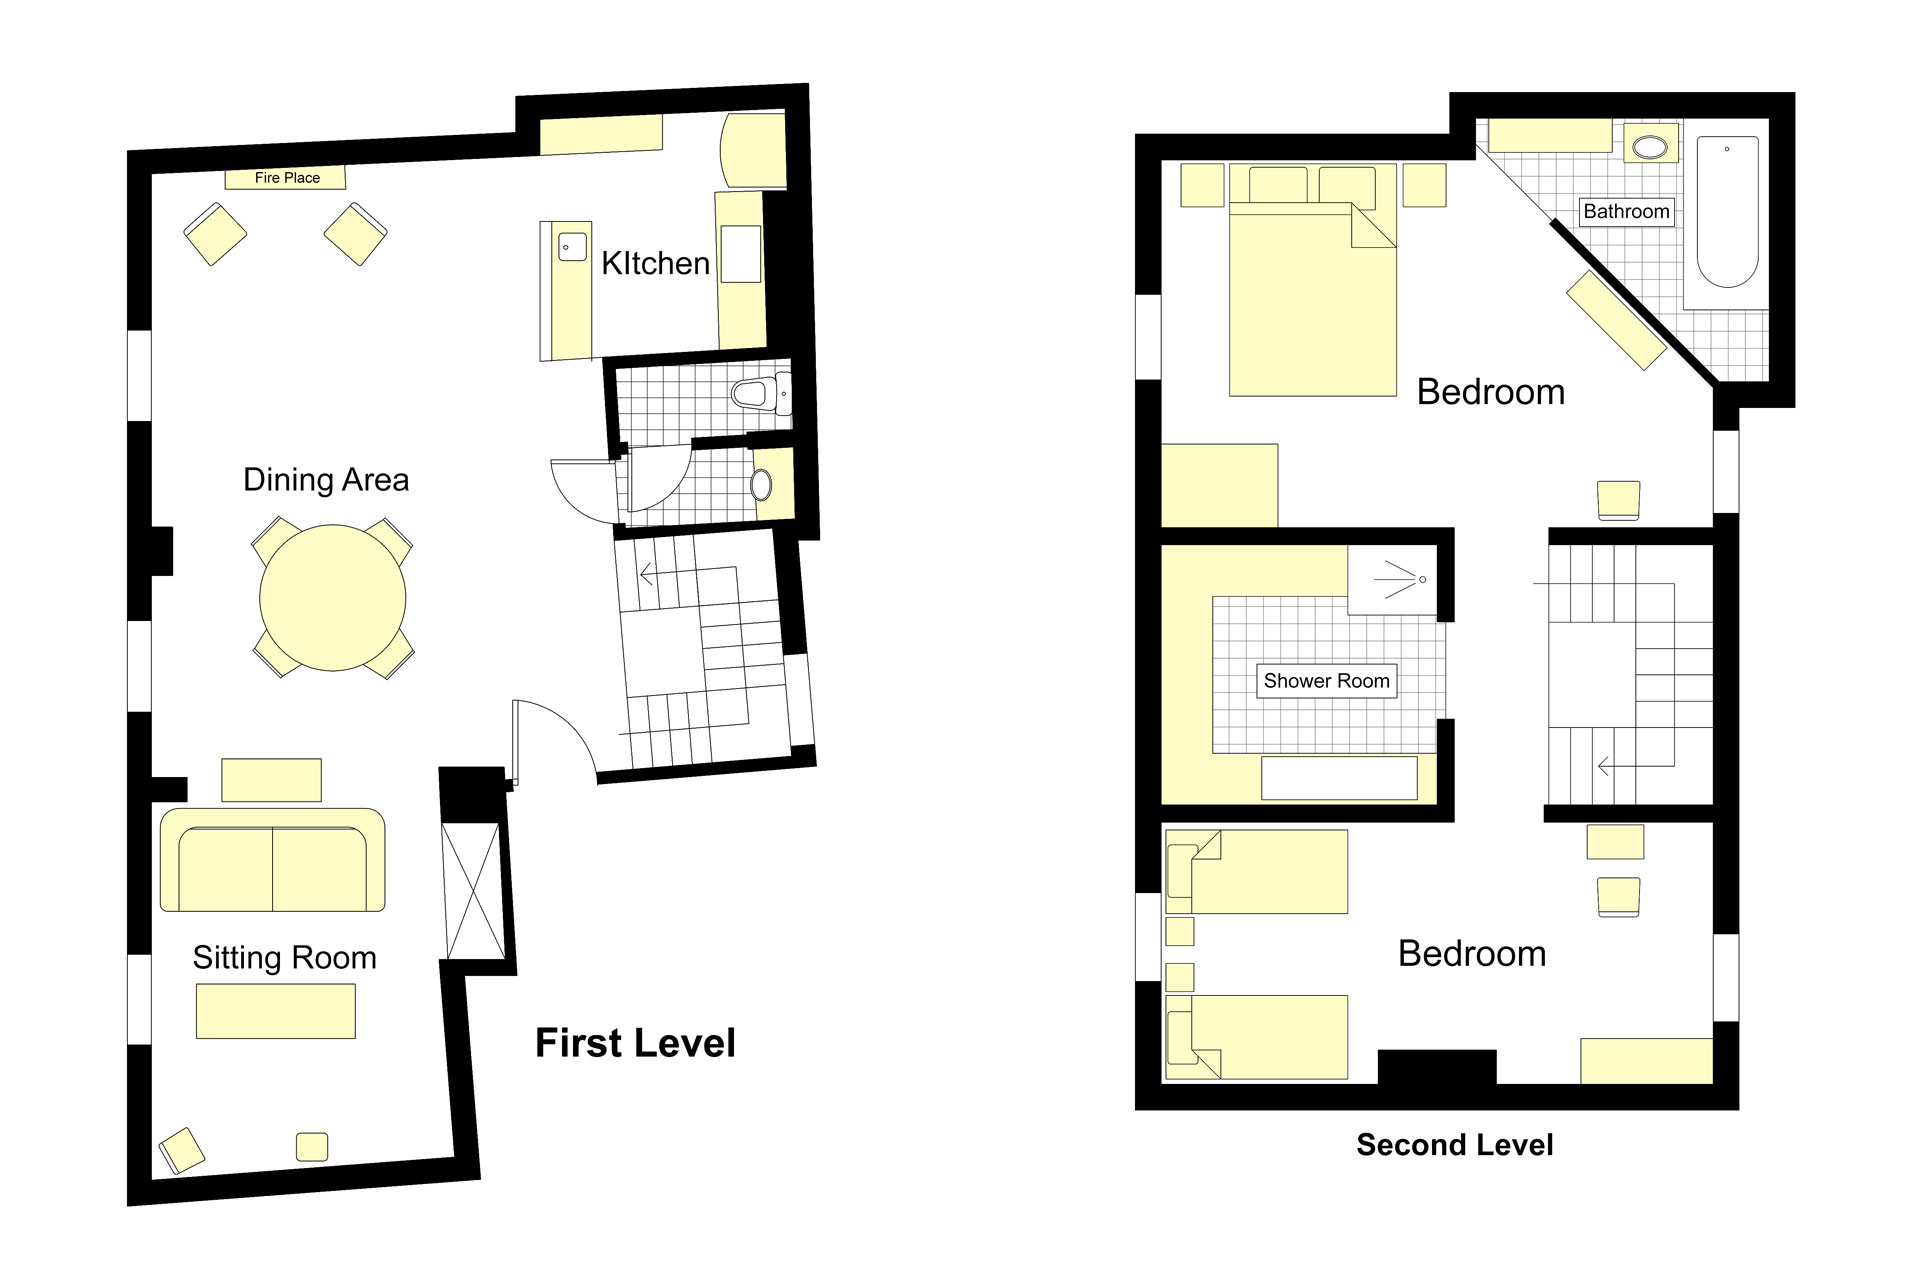 Floorplan of the Brittany vacation rental offered by Paris Perfect